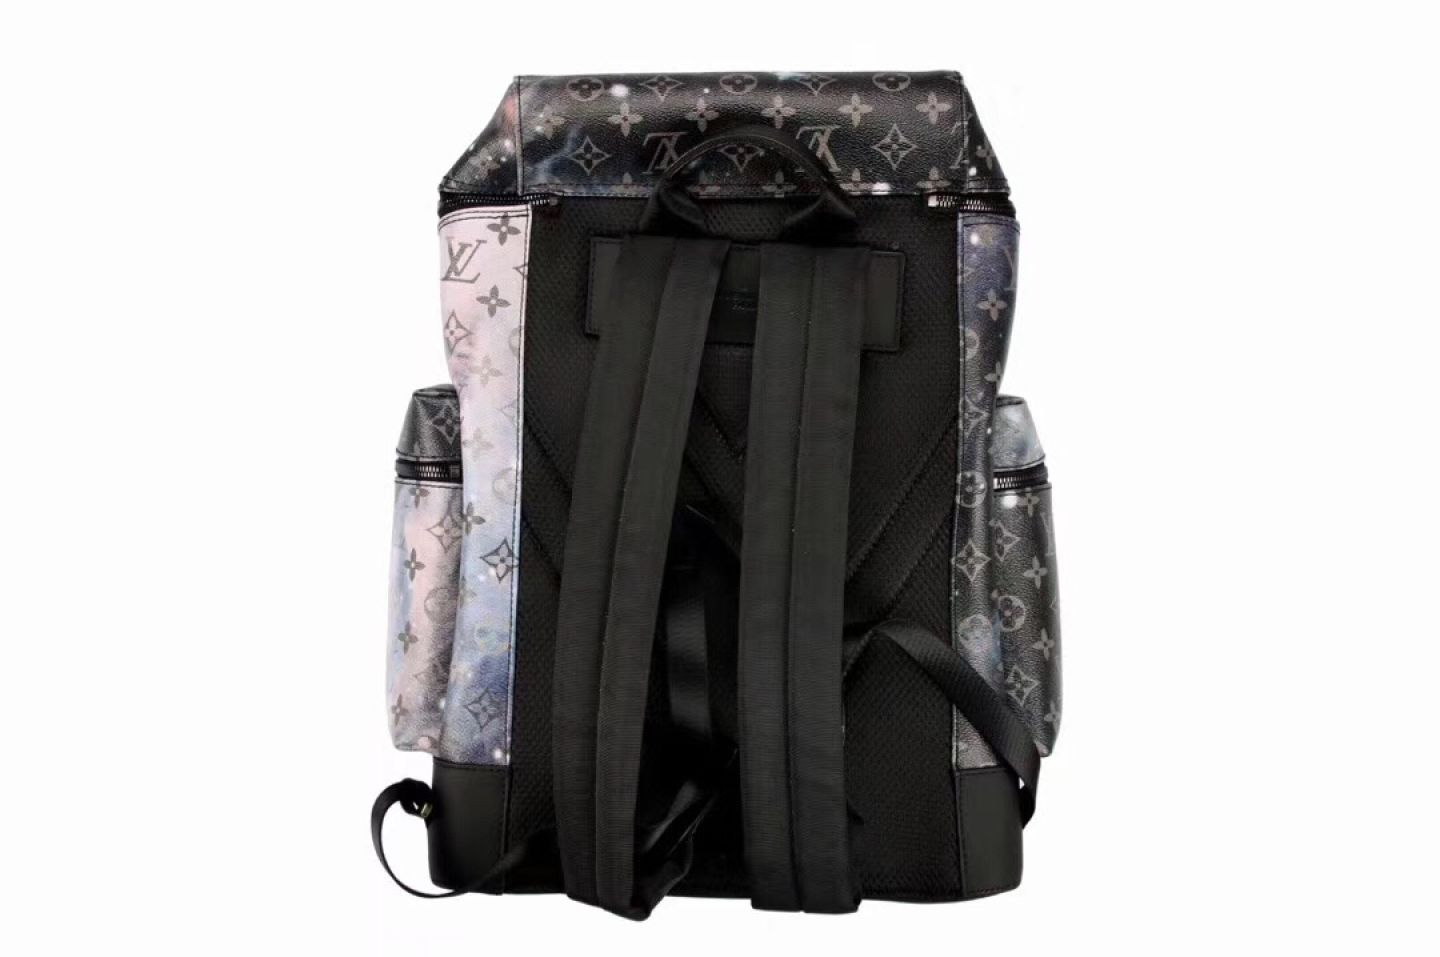 Goods Lo*is Vu*tton Alpha Backpack Monogram Galaxy Black Multicolor 5 lois_vutton_alpha_backpack_monogram_galaxy_black_multicolor__5